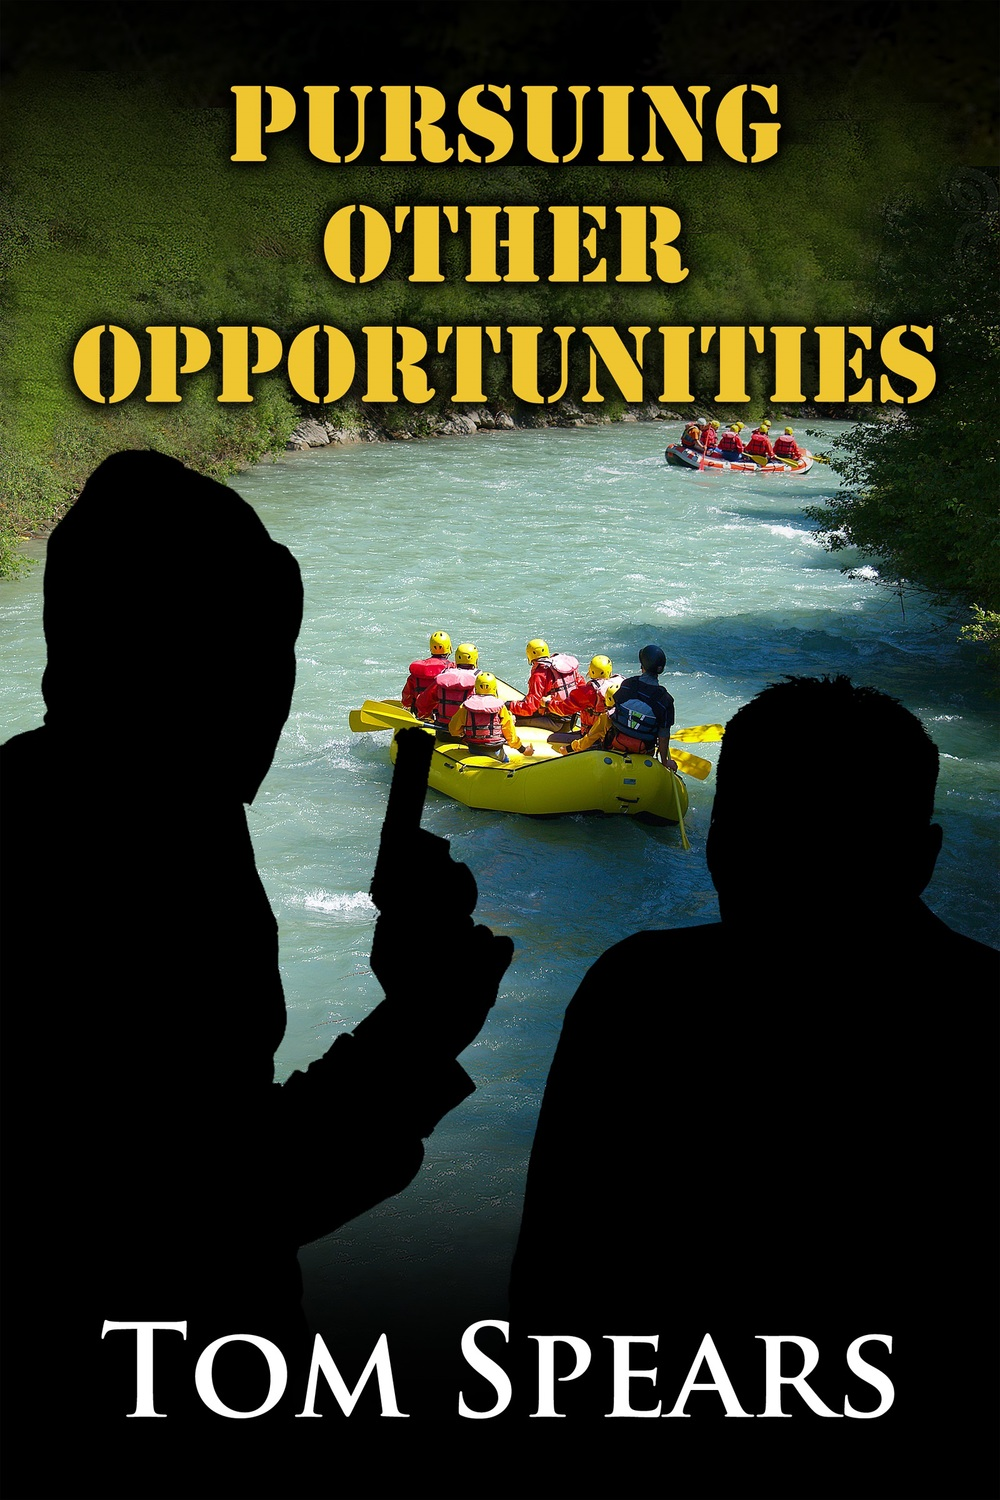 Cover Image for Pursuing Other Opportunities.  Click on the image for more information.